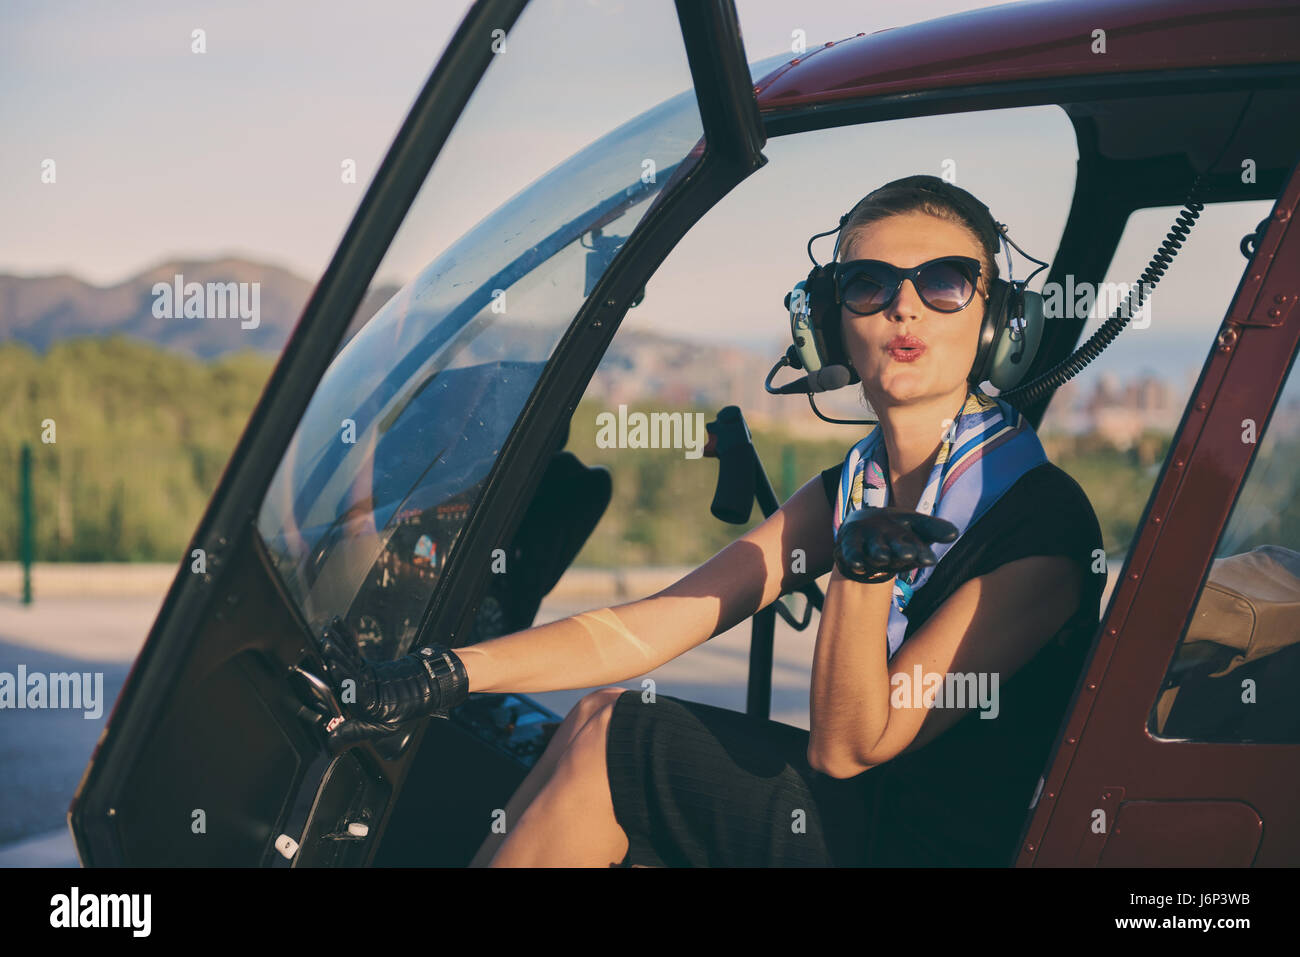 Attractive woman pilot sitting in the helicopter and blowing a kiss - Stock Image